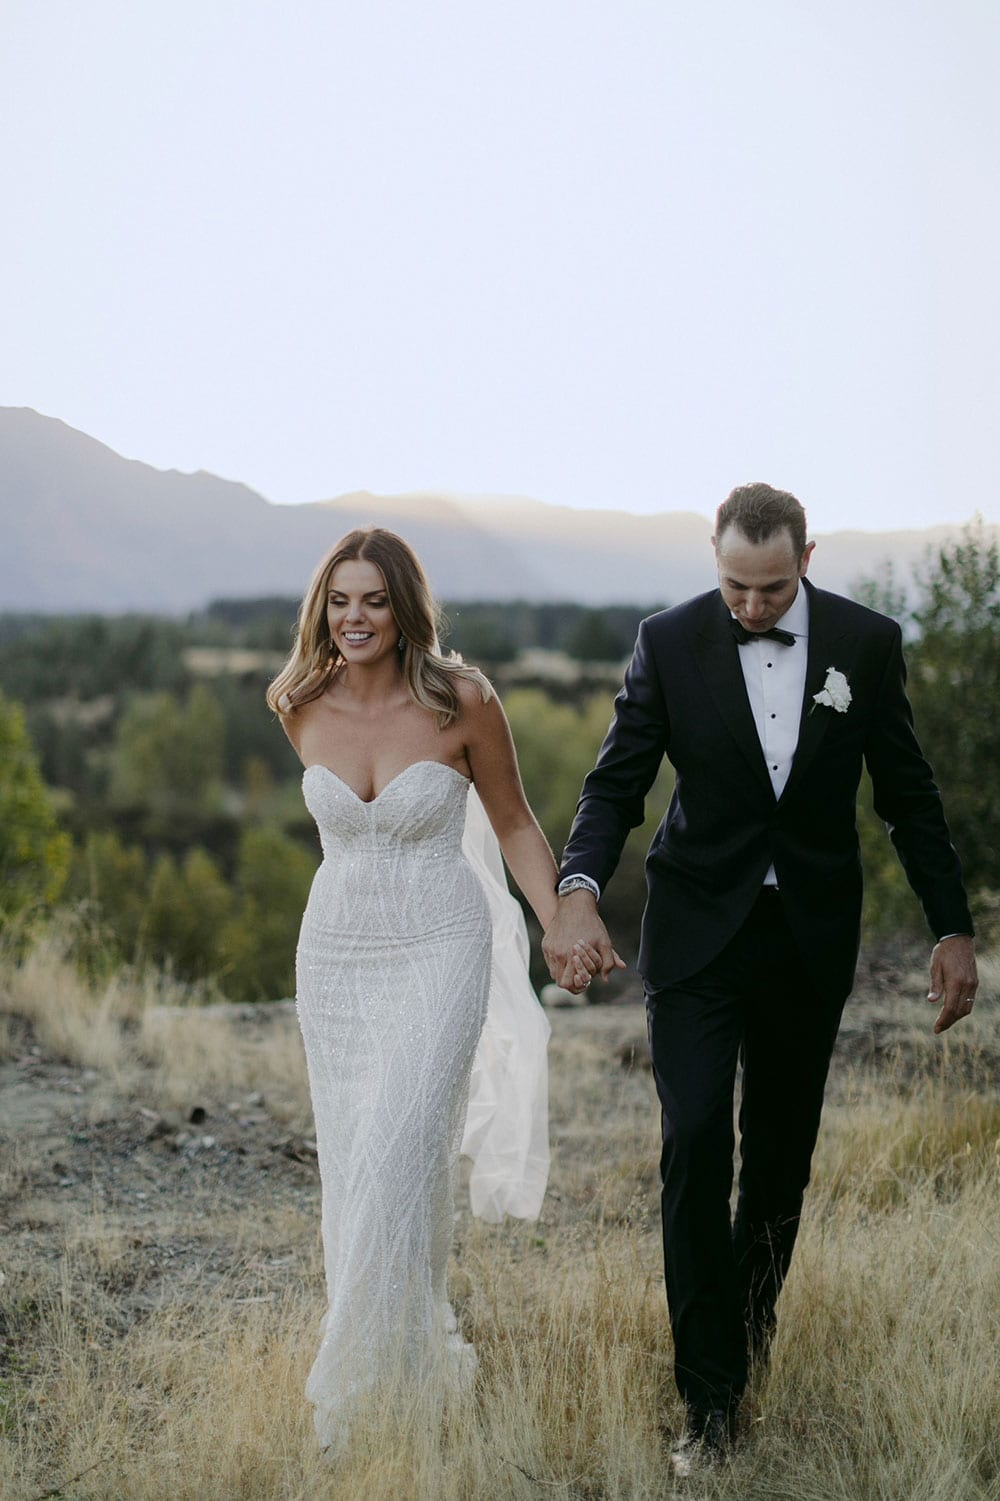 Vinka Design Features Real Weddings - bride in custom made gown, a combination of our Indi wedding dress with added beading appliqued and sewn by hand, over the top of a nude semi sheer base. Walking with groom outdoors in Queenstown